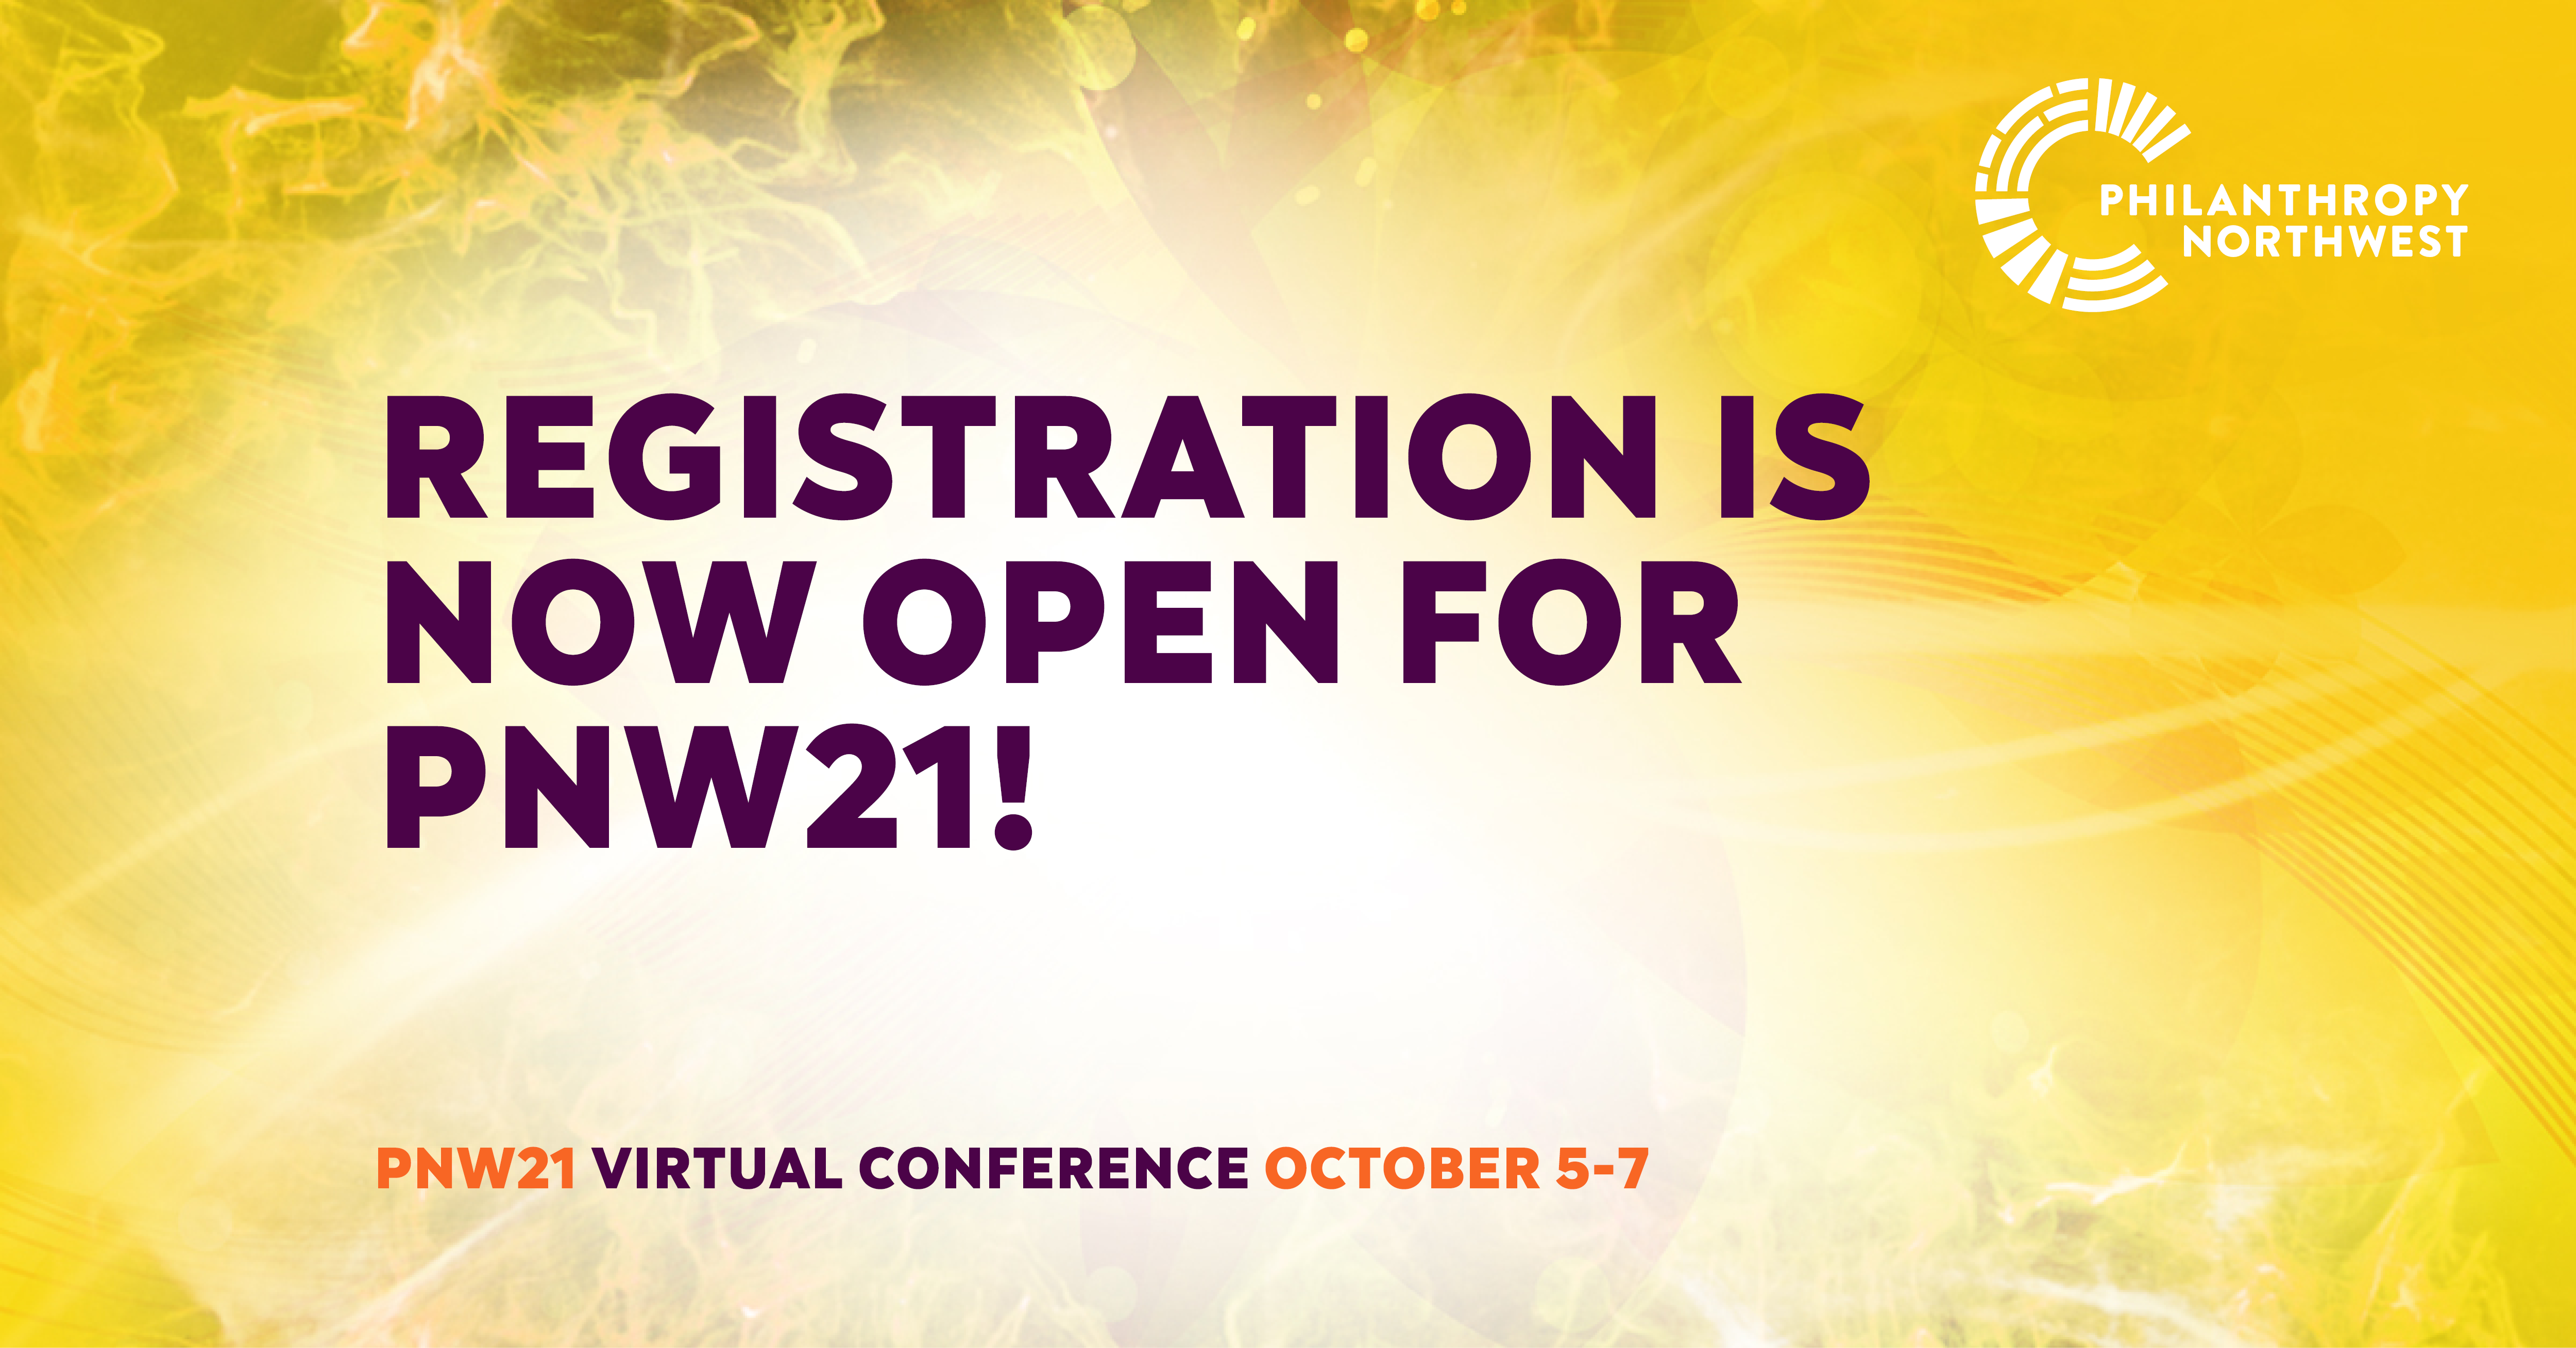 Registration is now open for PNW21 - Virtual Conference - October 5-7, 2021. Philanthropy Northwest